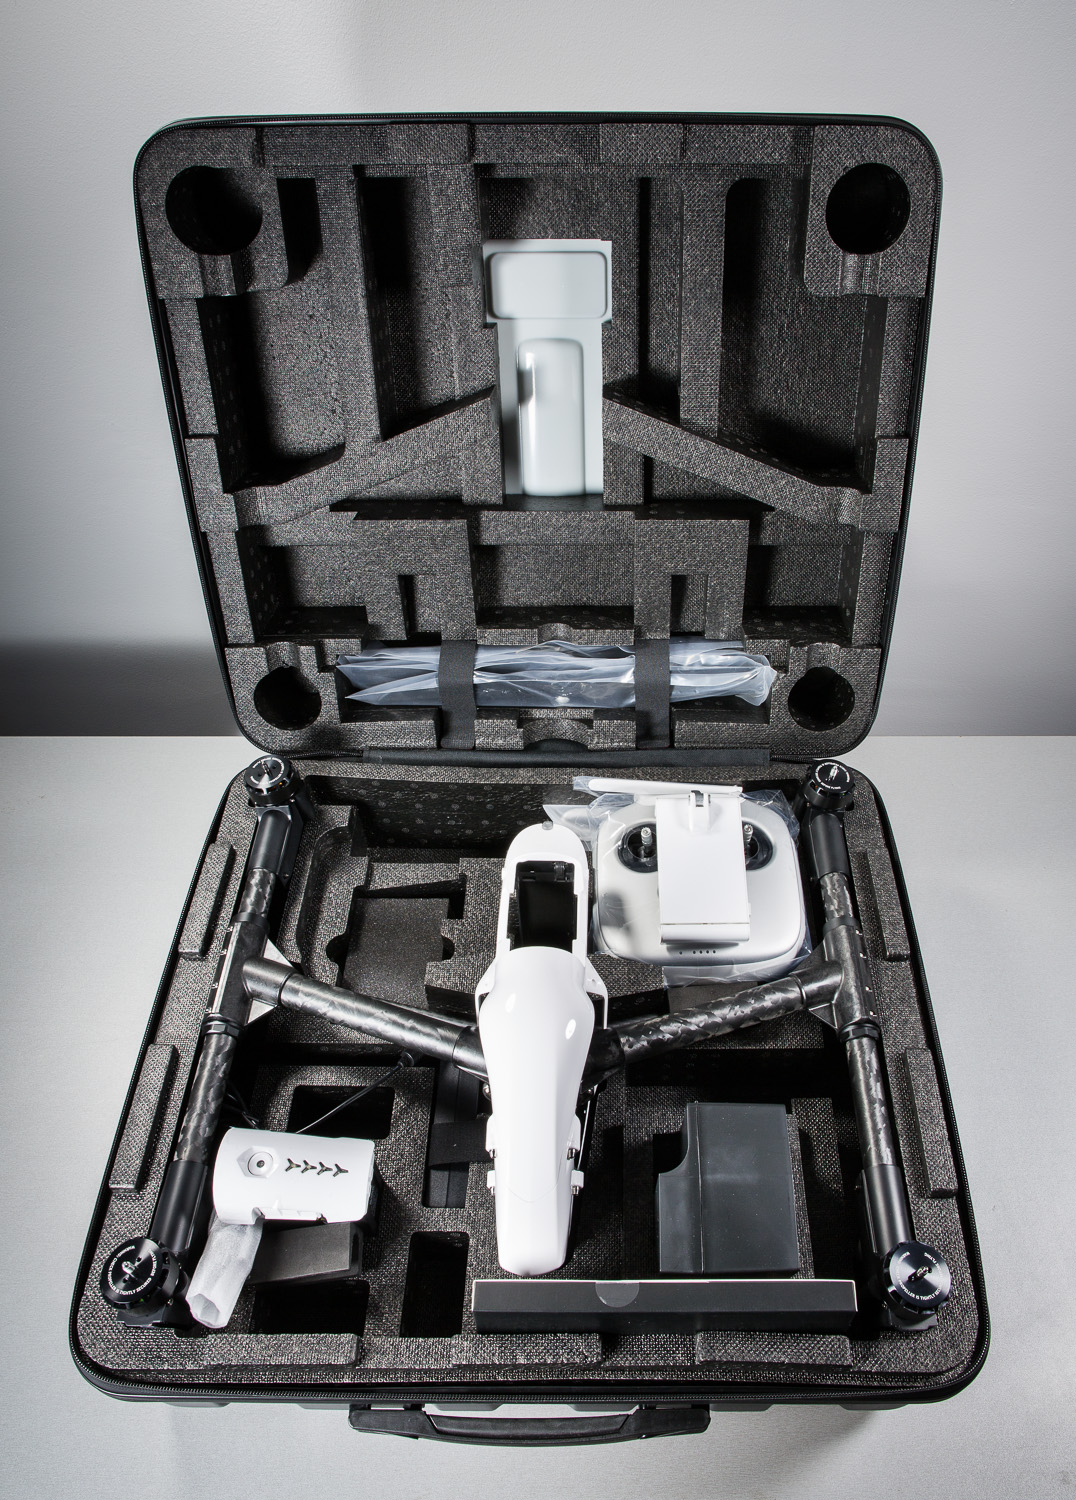 dji-phantom-vision-droon-photopoint--300